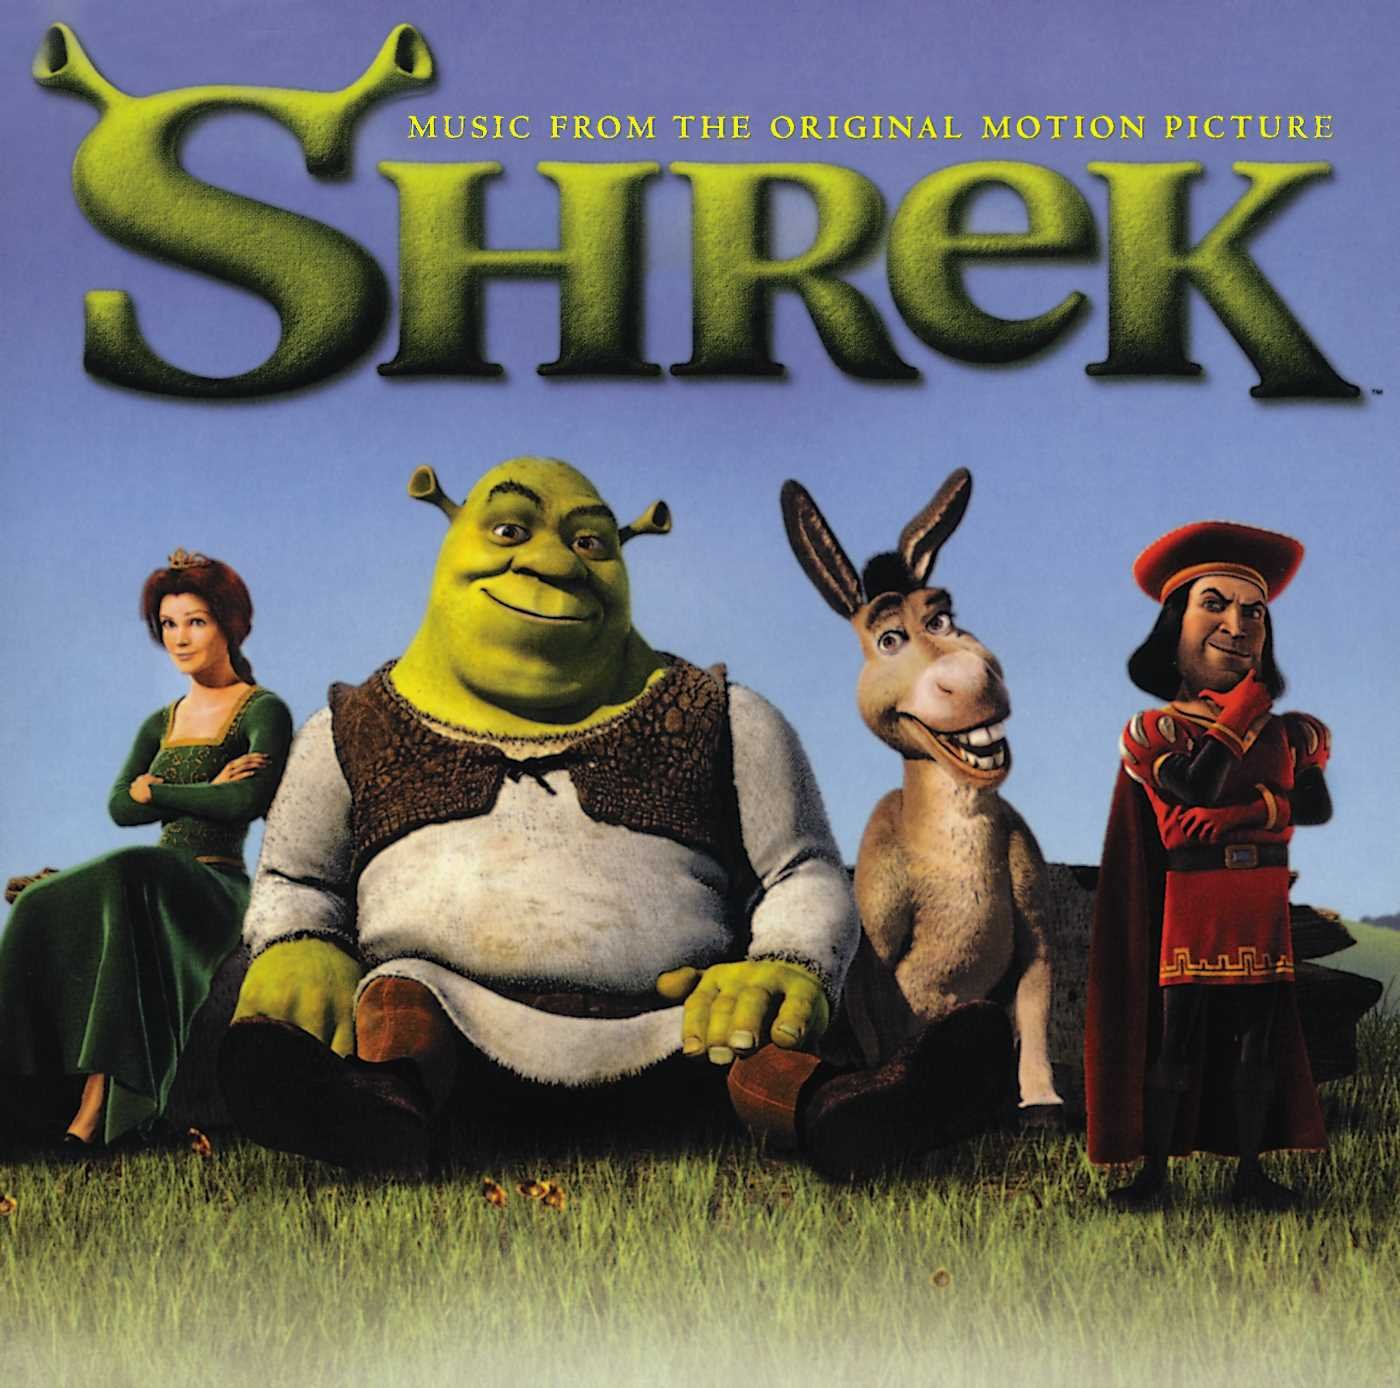 Shrek - Music from the Original Motion Picture by Dreamworks